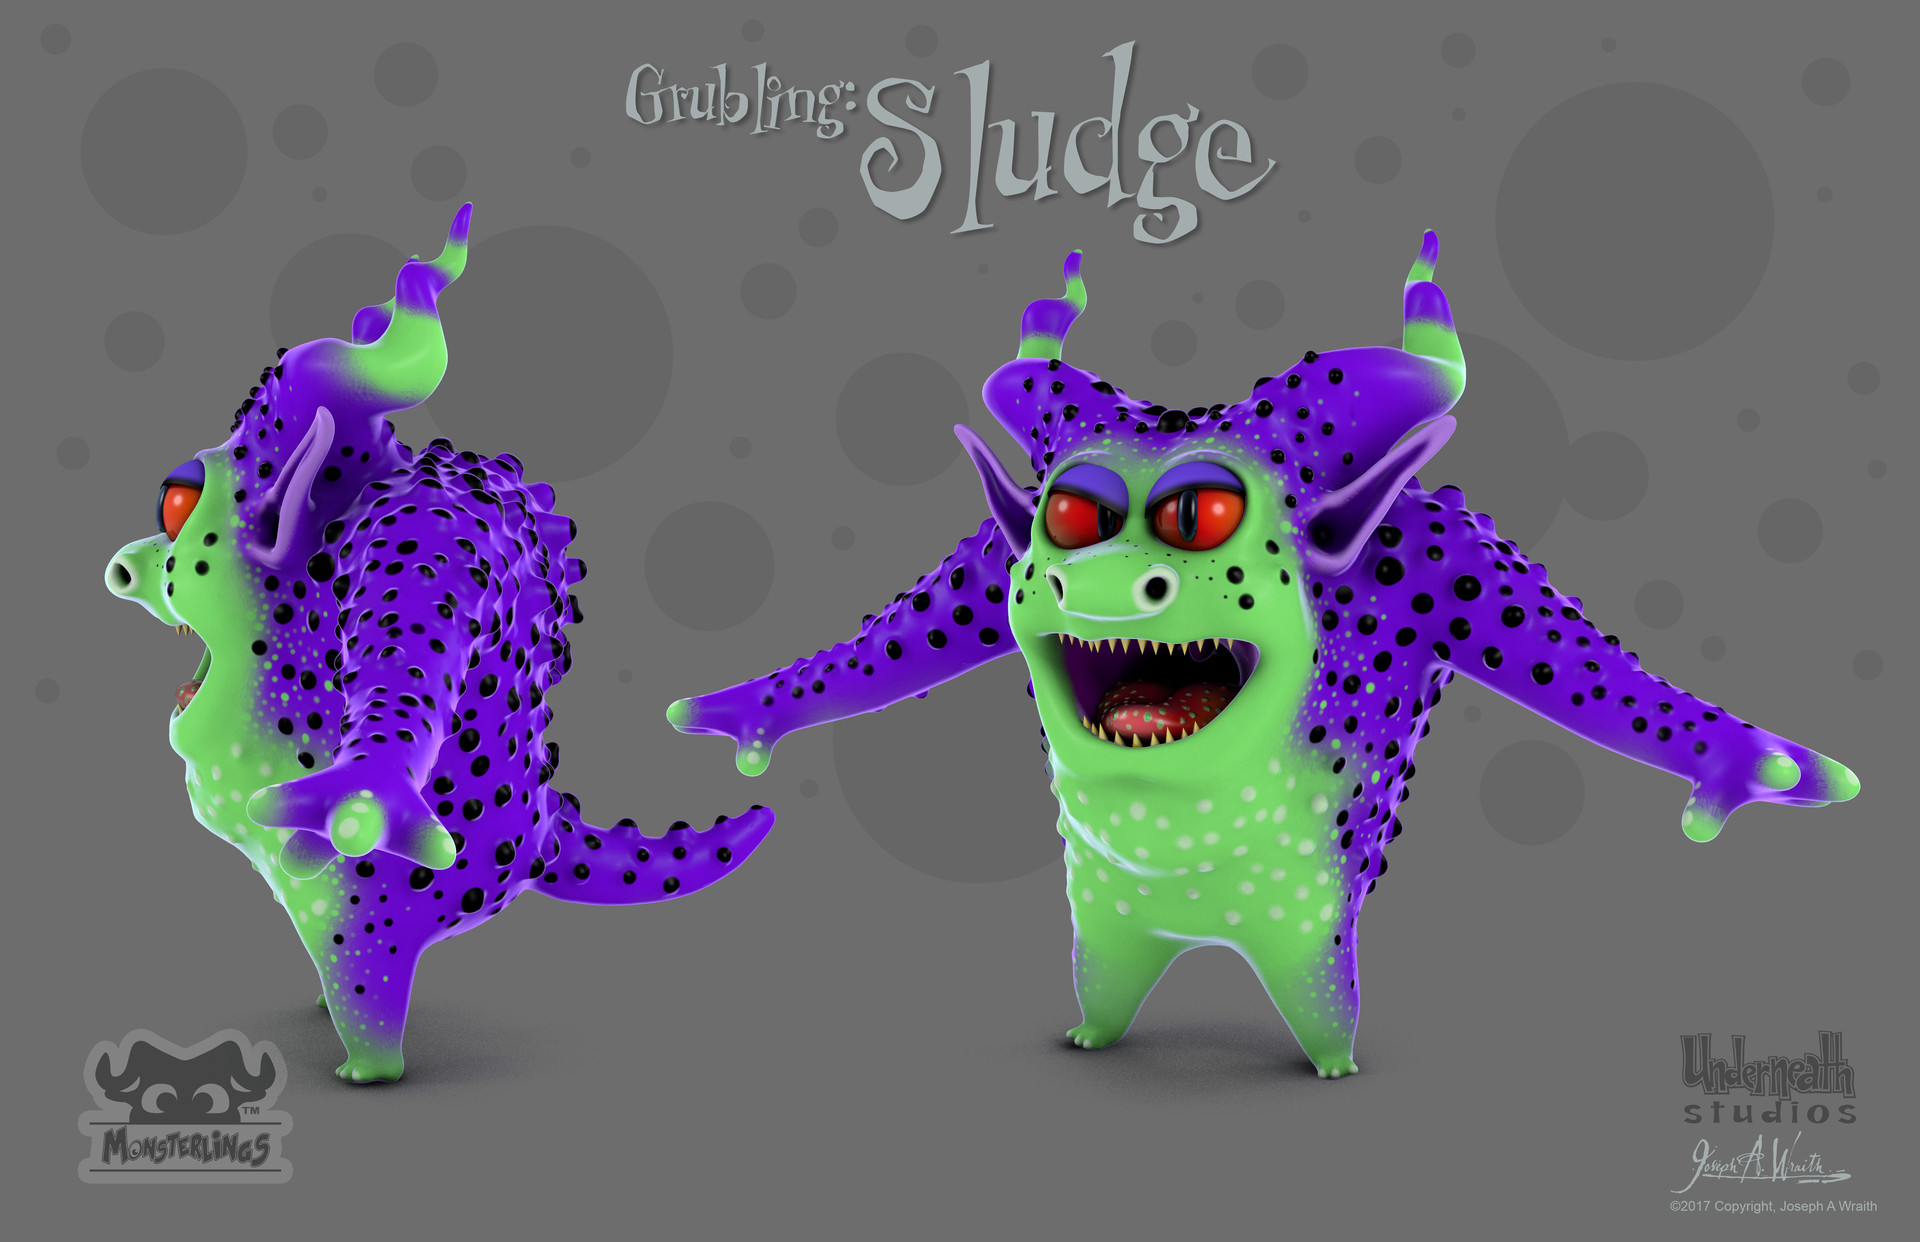 Here is another new Grubling named Sludge, he is one of Raze's henchmen and the muscle behind his dastardly ideas.